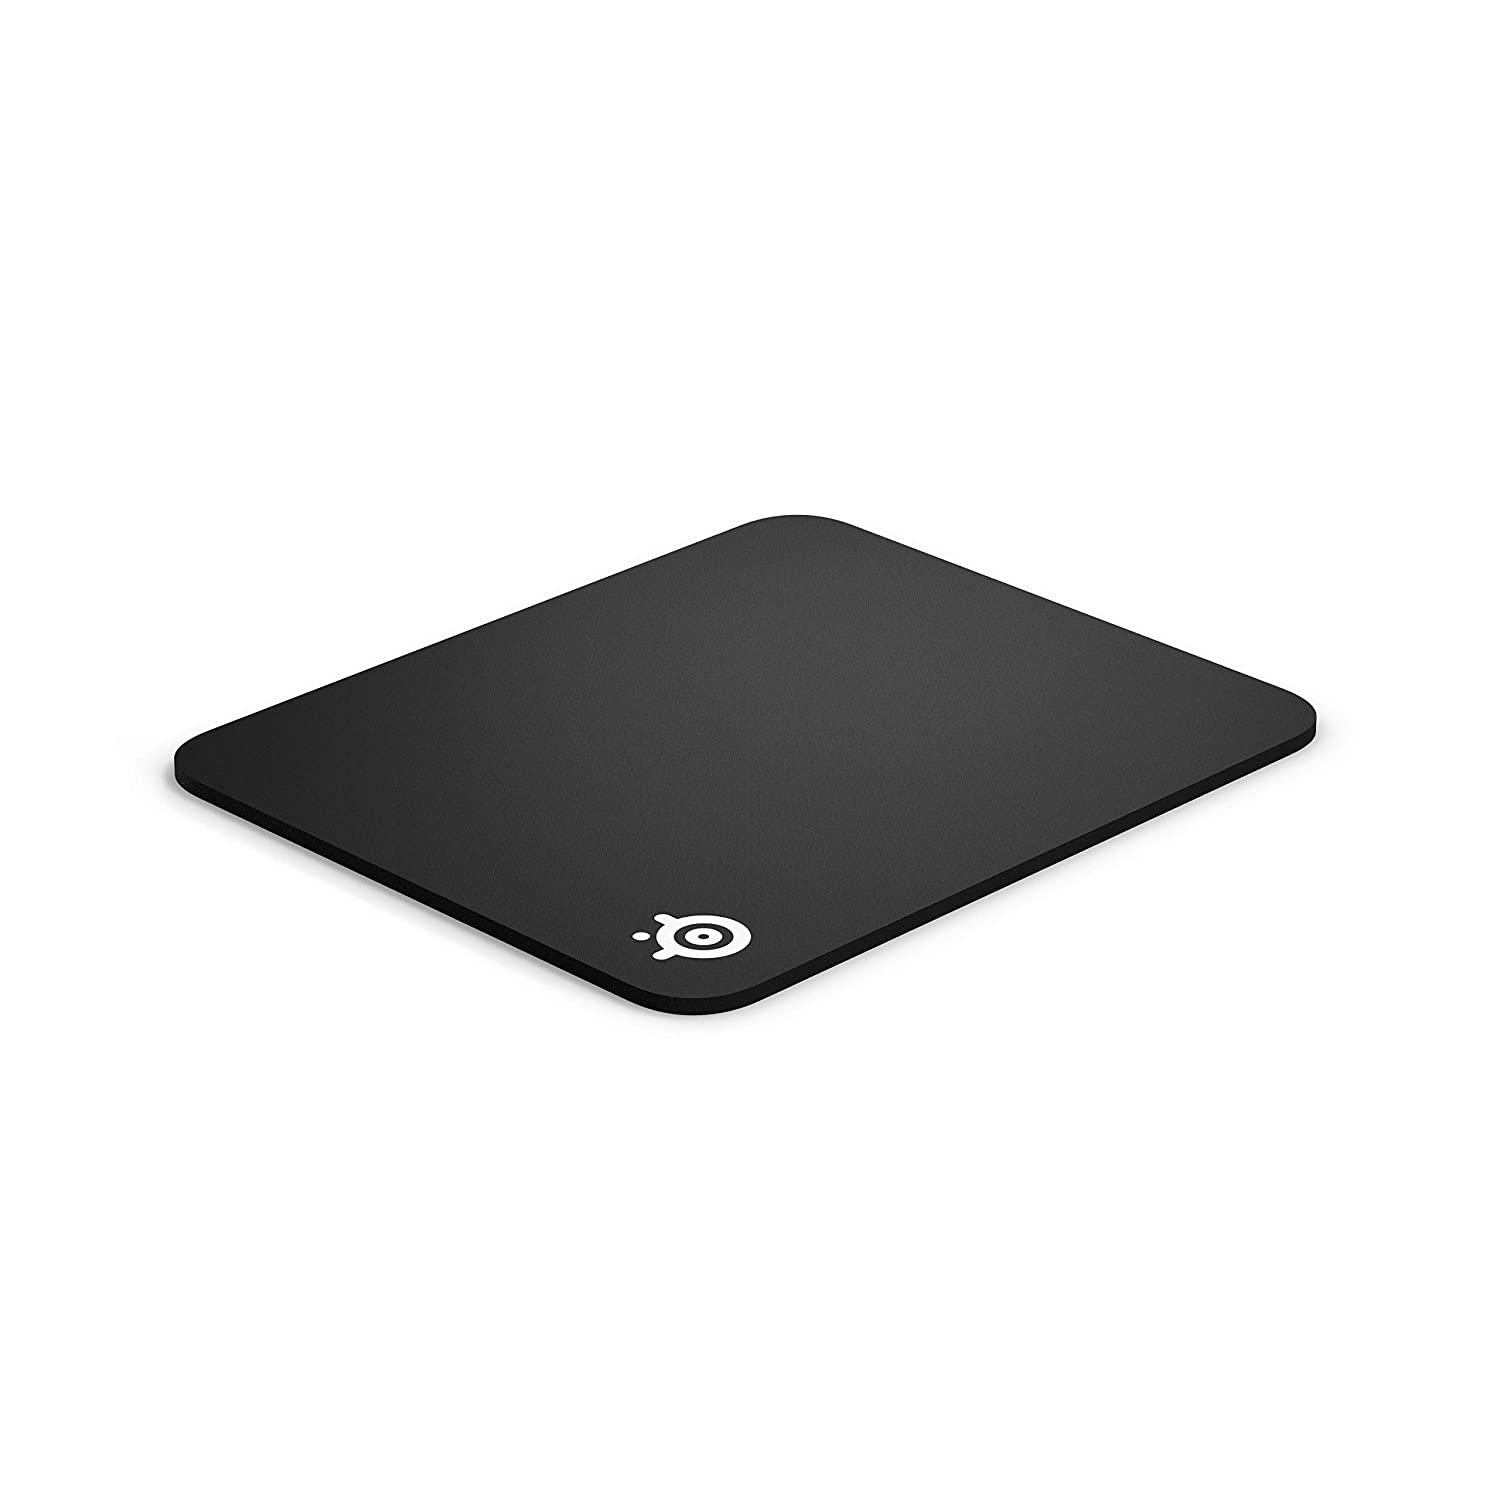 SteelSeries Qck Gaming Surface – Medium Thick Cloth – BEST Selling Mouse Pad of All Time – Peak Tracking and Stability – Maximum Control